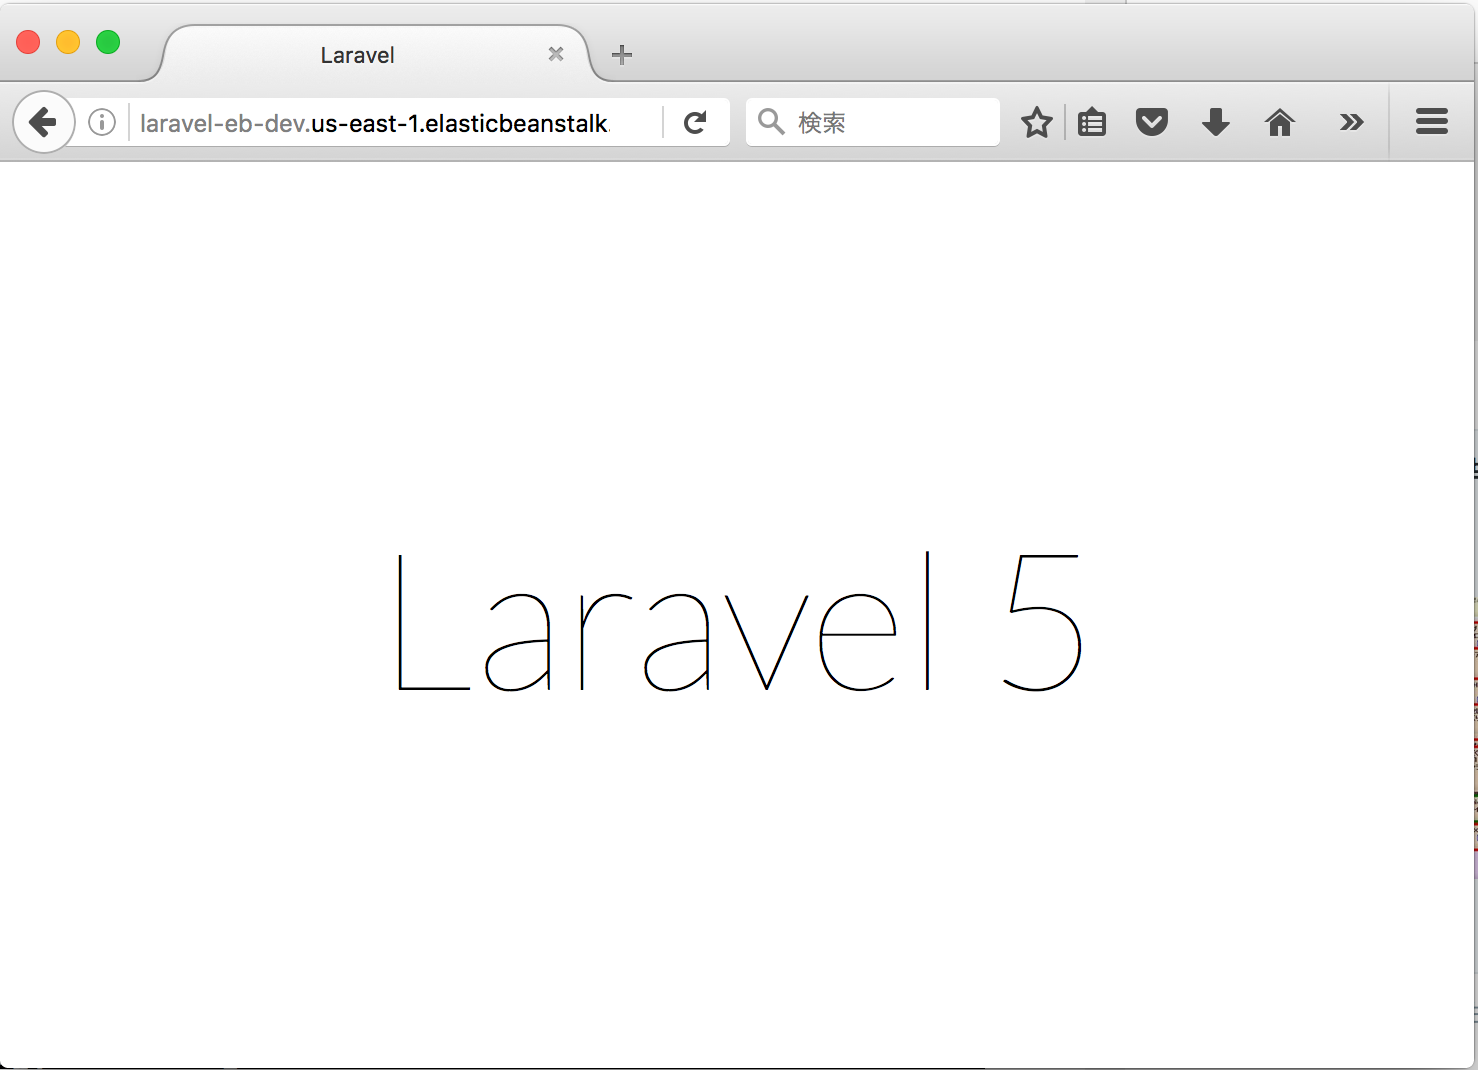 laravel-eb-show-default-index-page